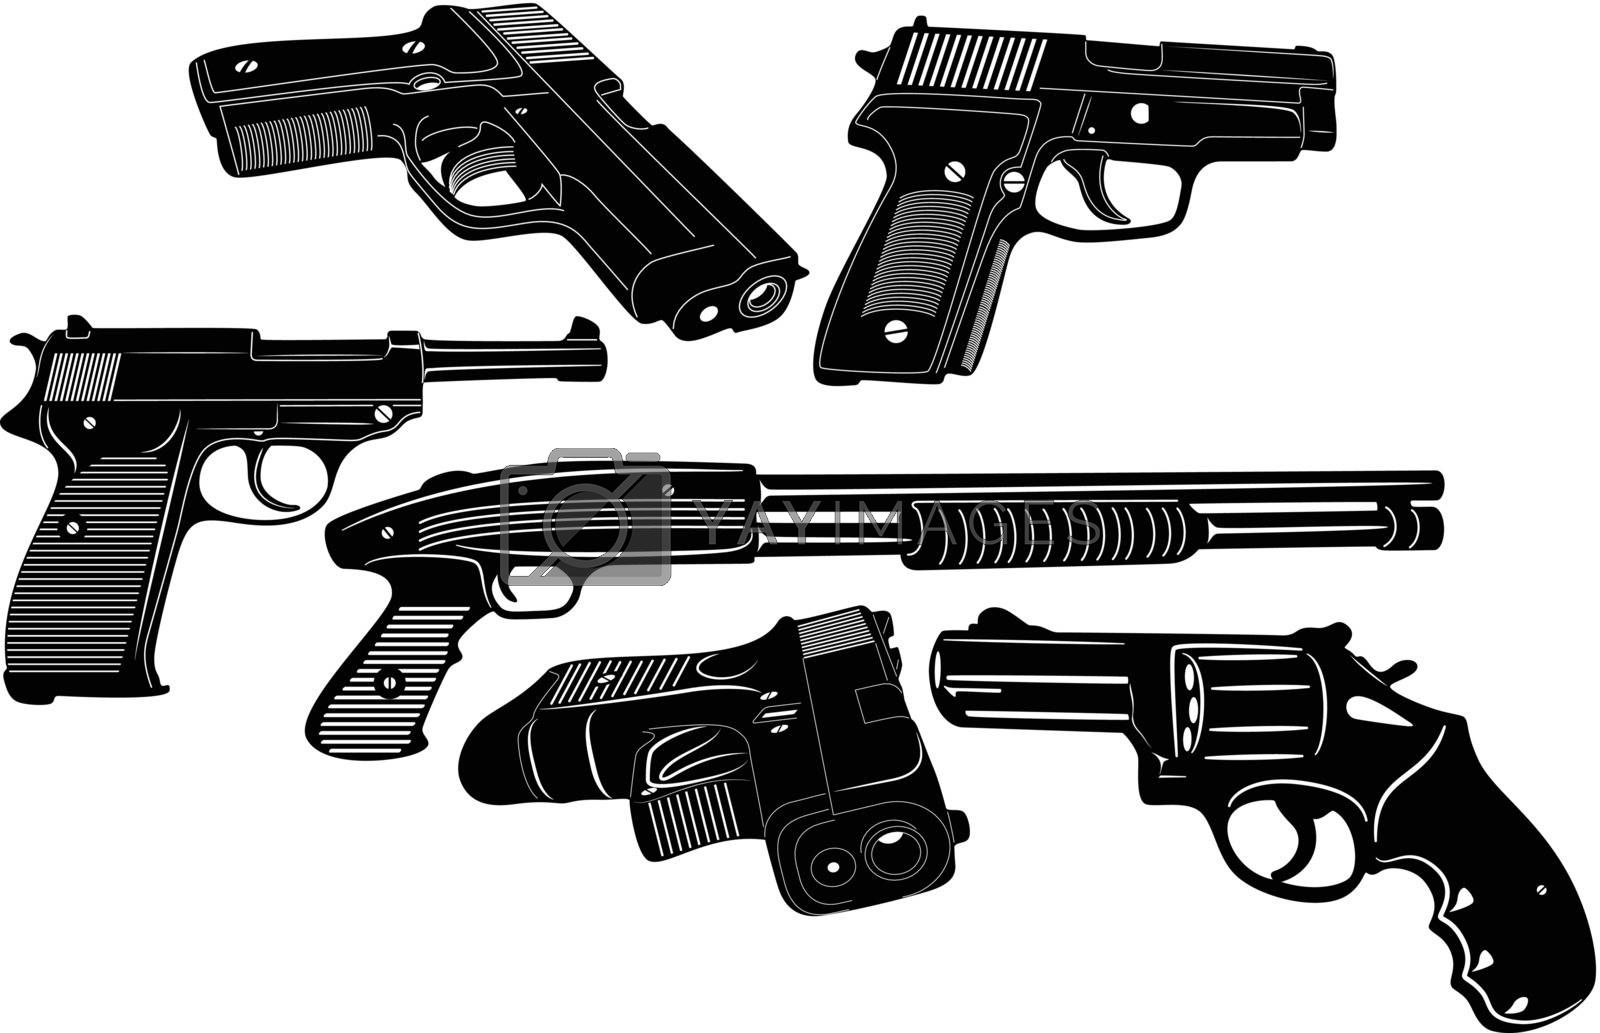 gun silhouette royalty free stock image stock photos royalty free images vectors footage yayimages https www yayimages com 13521476 gun silhouette html